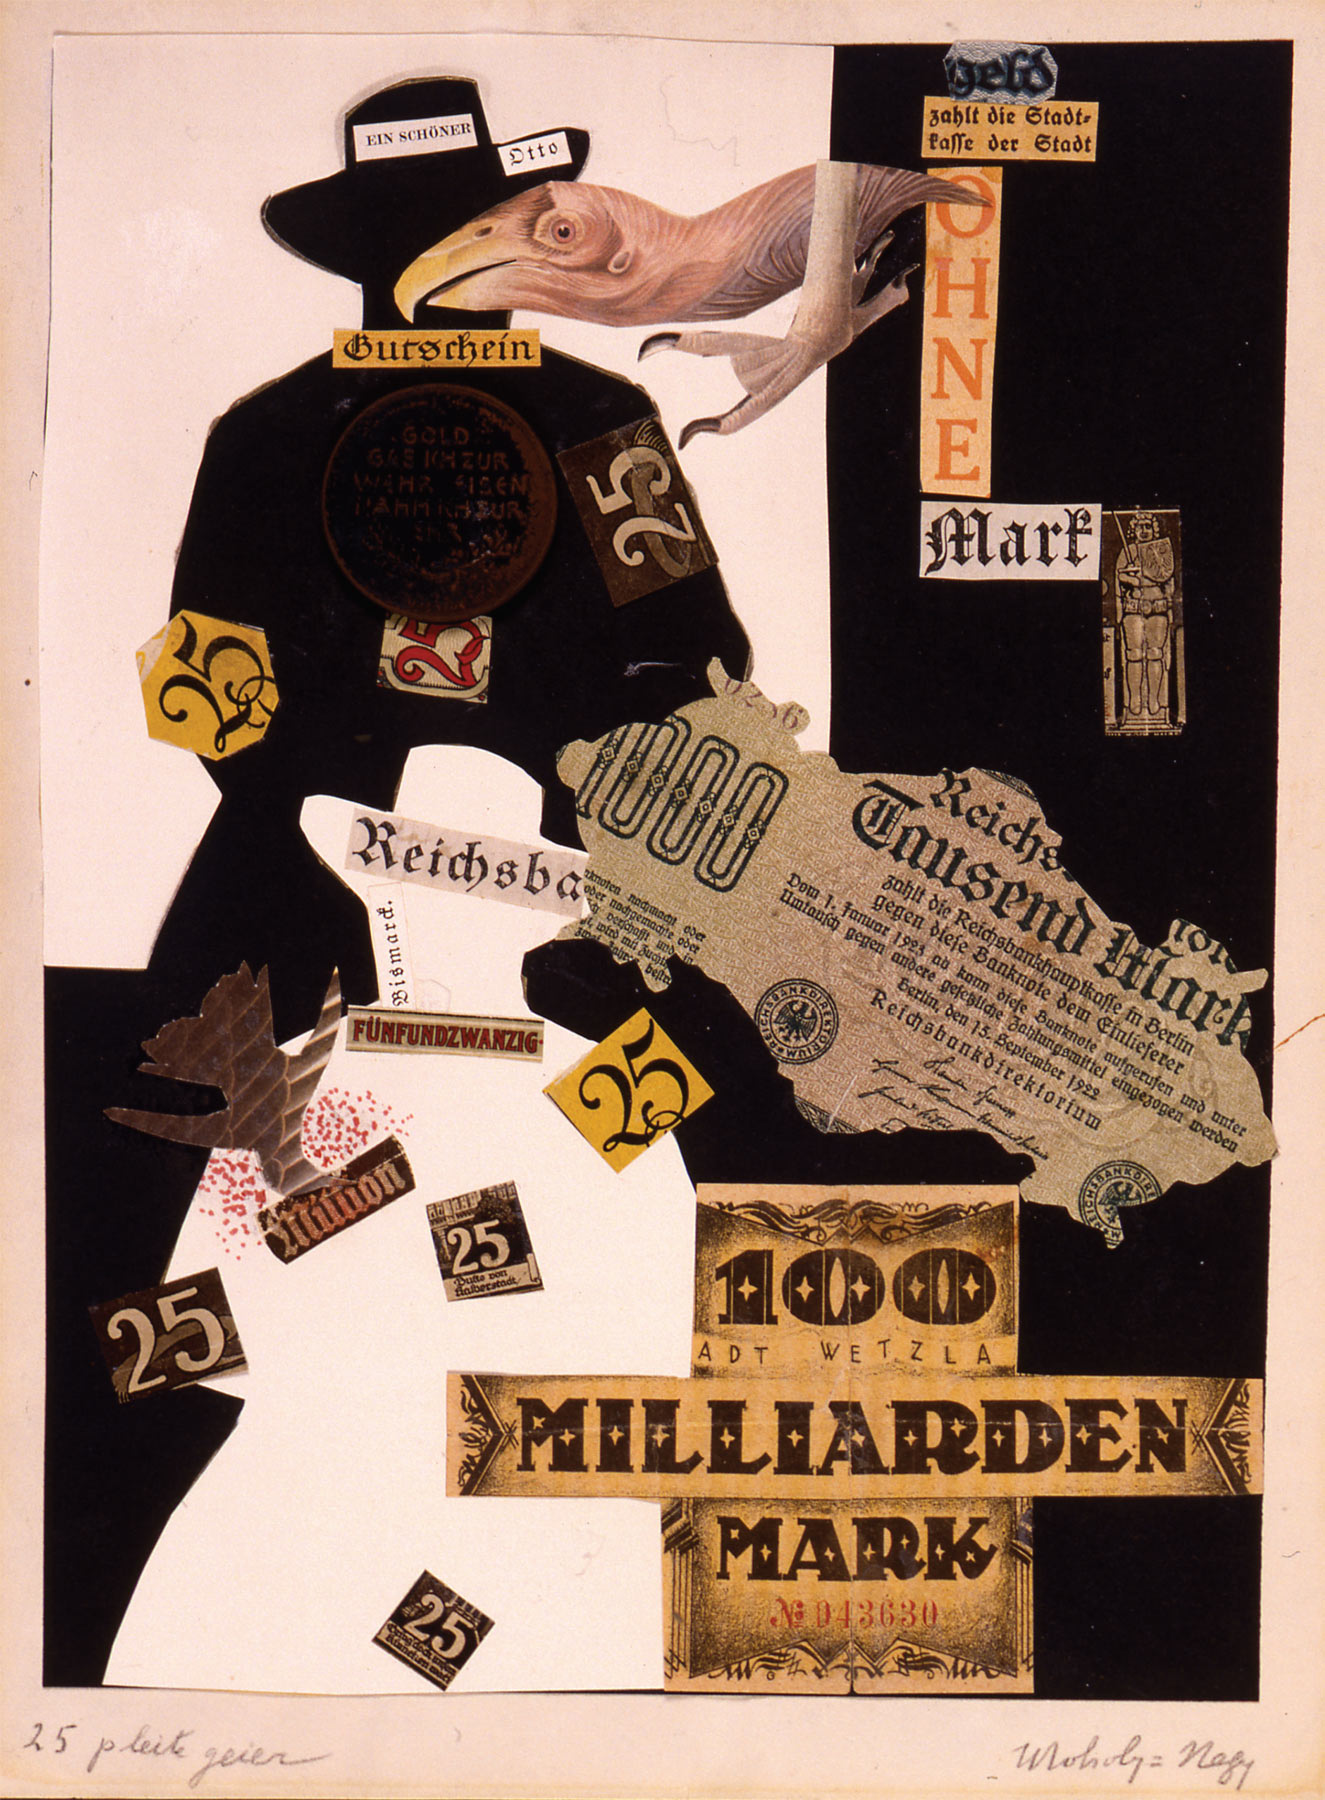 László Moholy-Nagy, 25 Pleitegeier (1922–23; collage su carta, 30 x 23 cm; Gerusalemme, The Vera and Arturo Schwarz Collection of Dada and Surrealist Art in the Israel Museum)